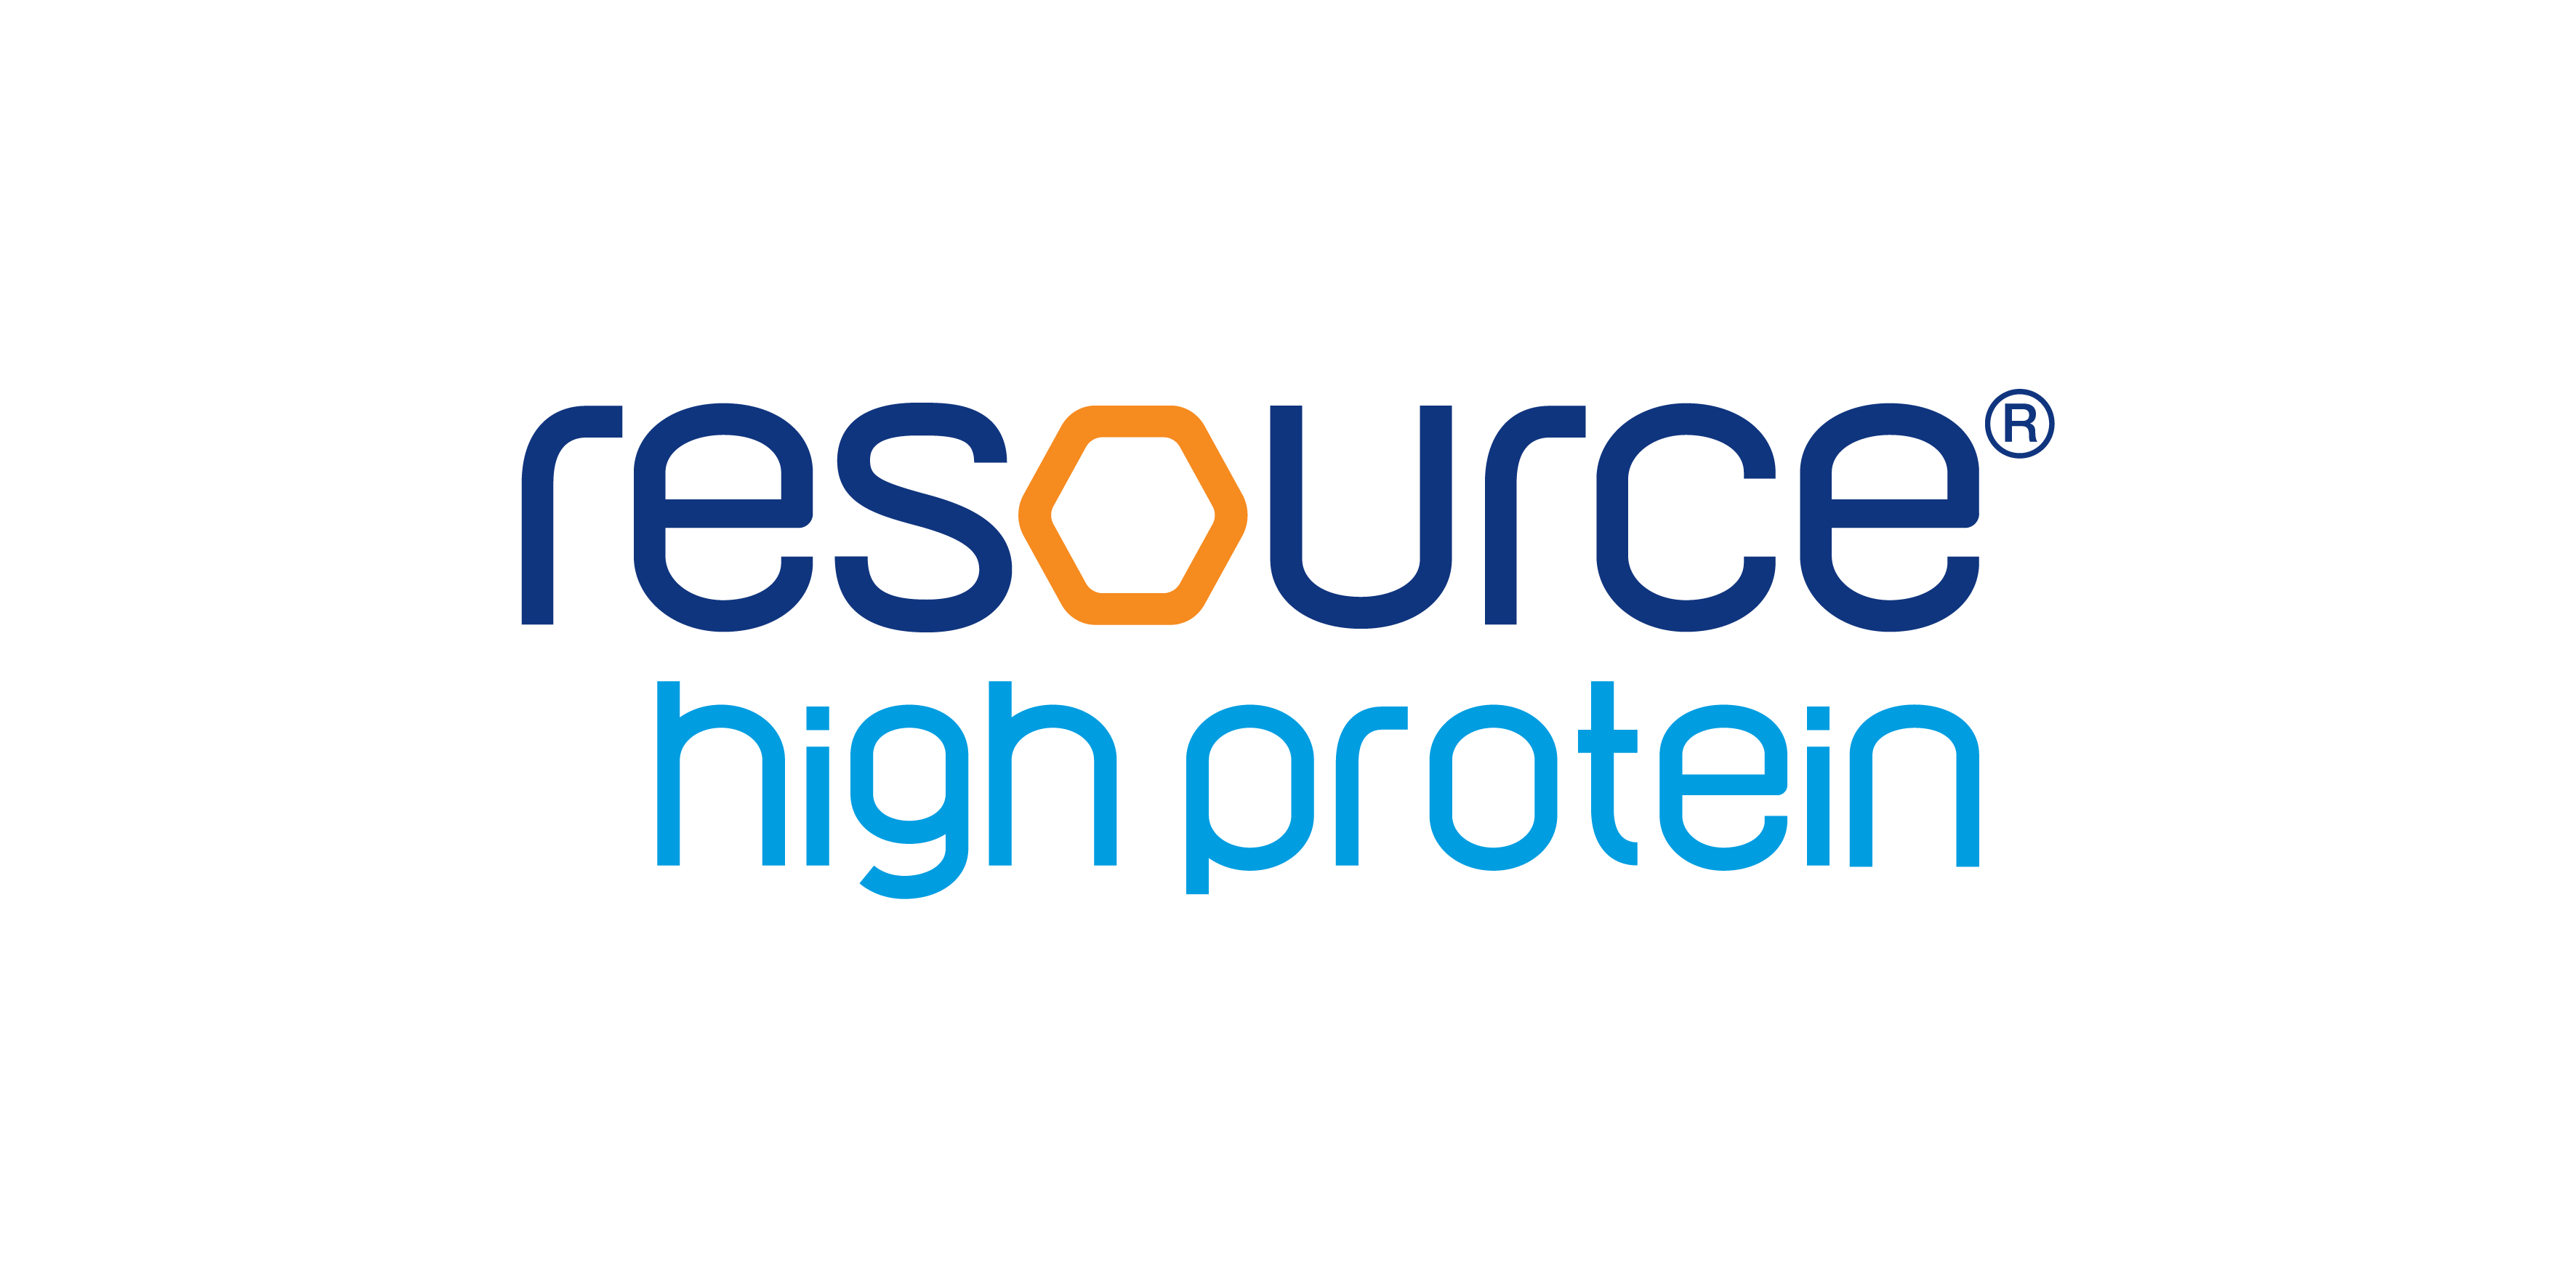 Resource High Protein